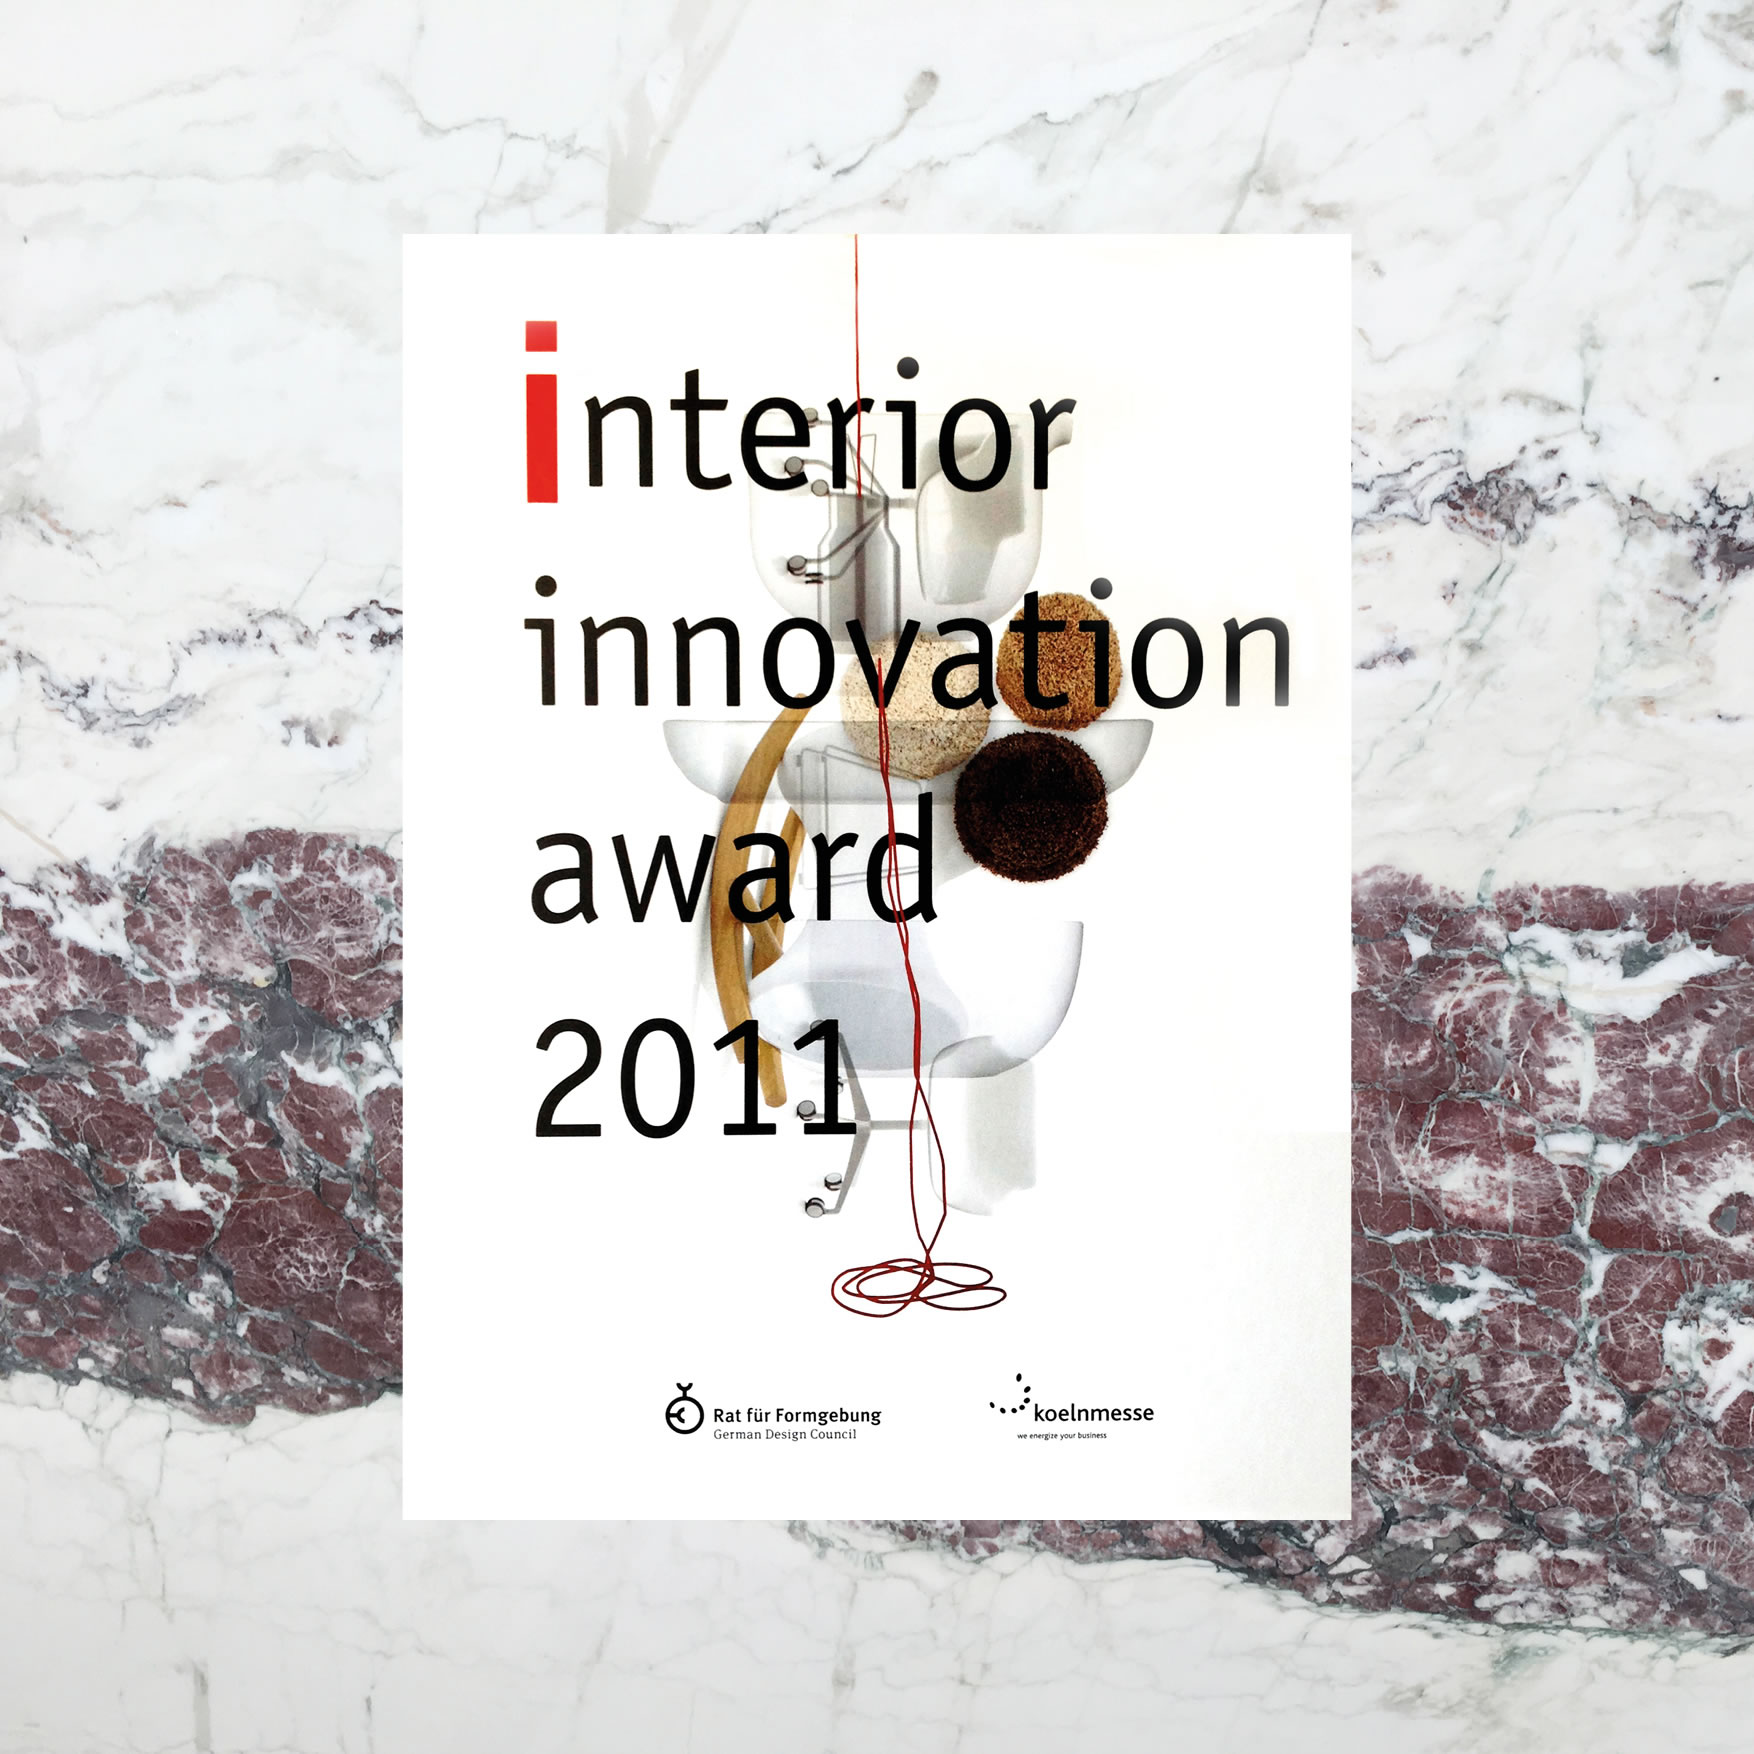 Design-Preis-Interior-Architekturmagazin